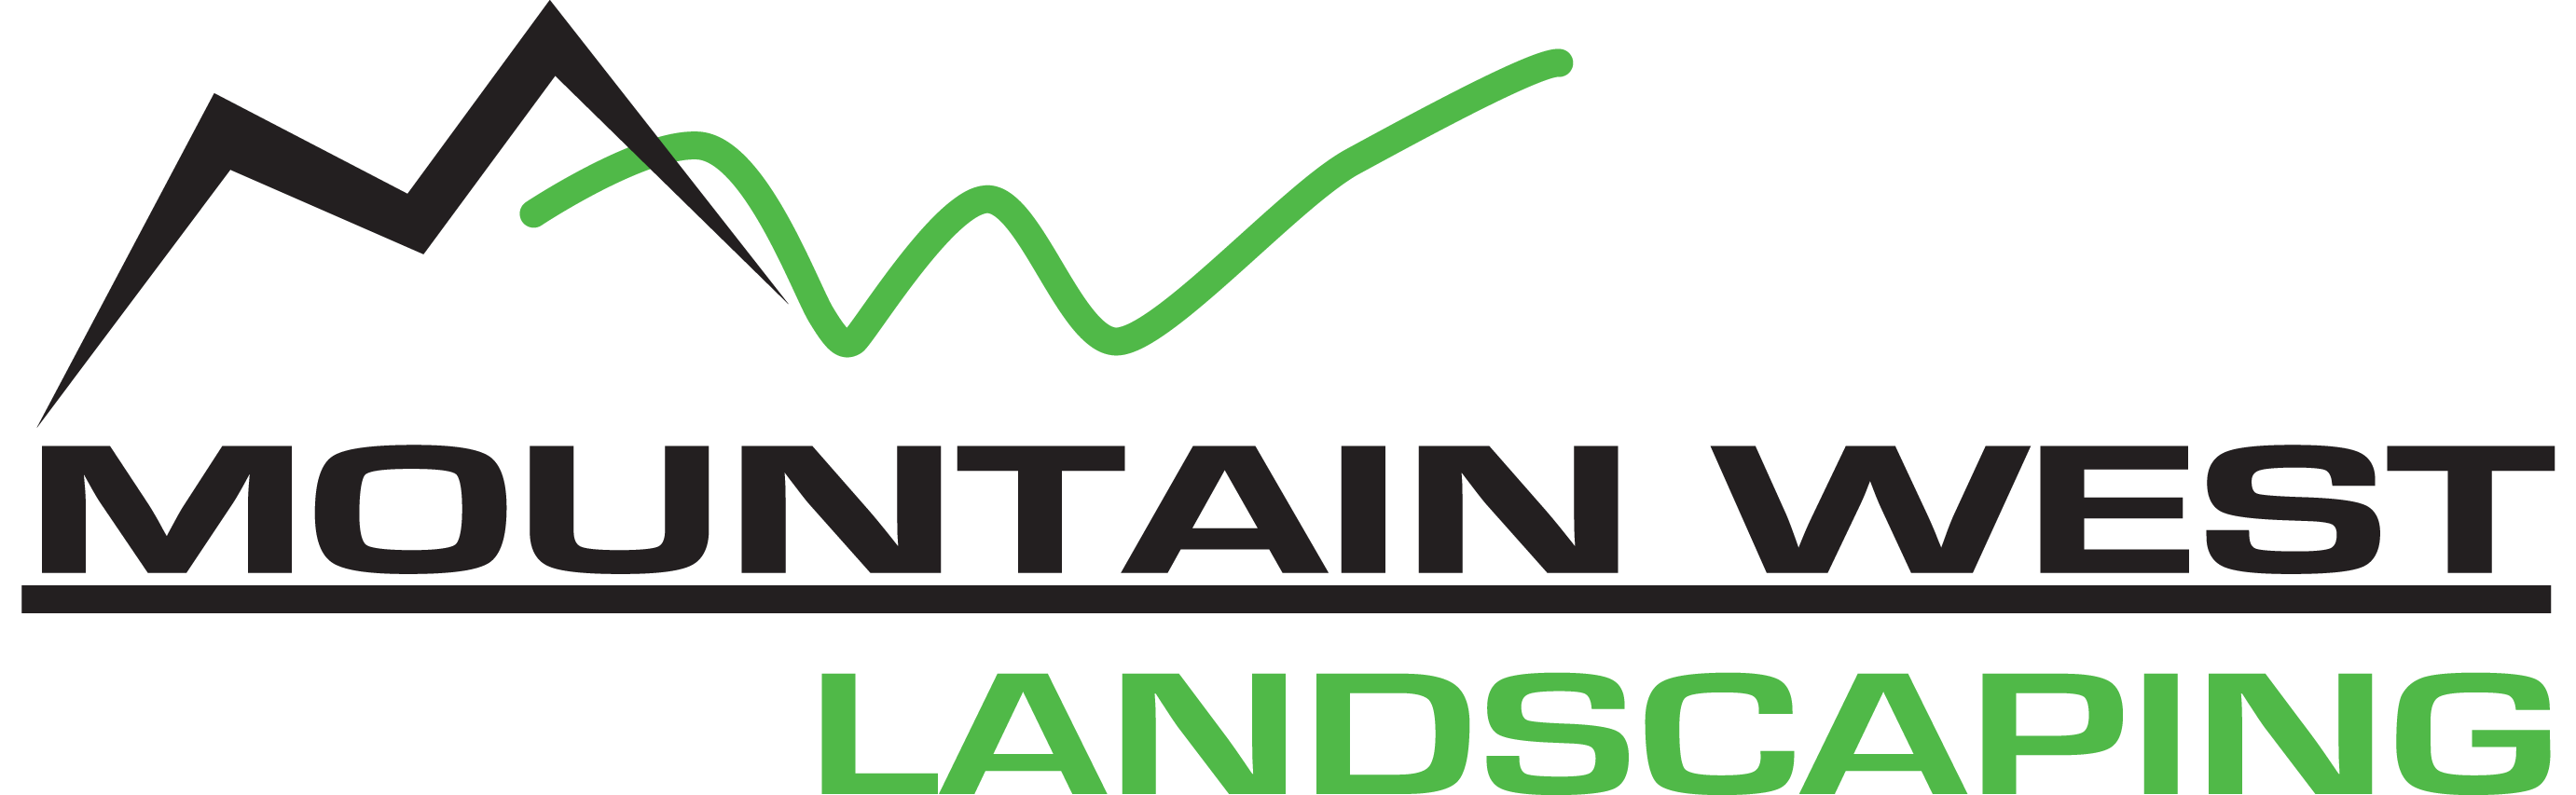 Mountain West Landscaping